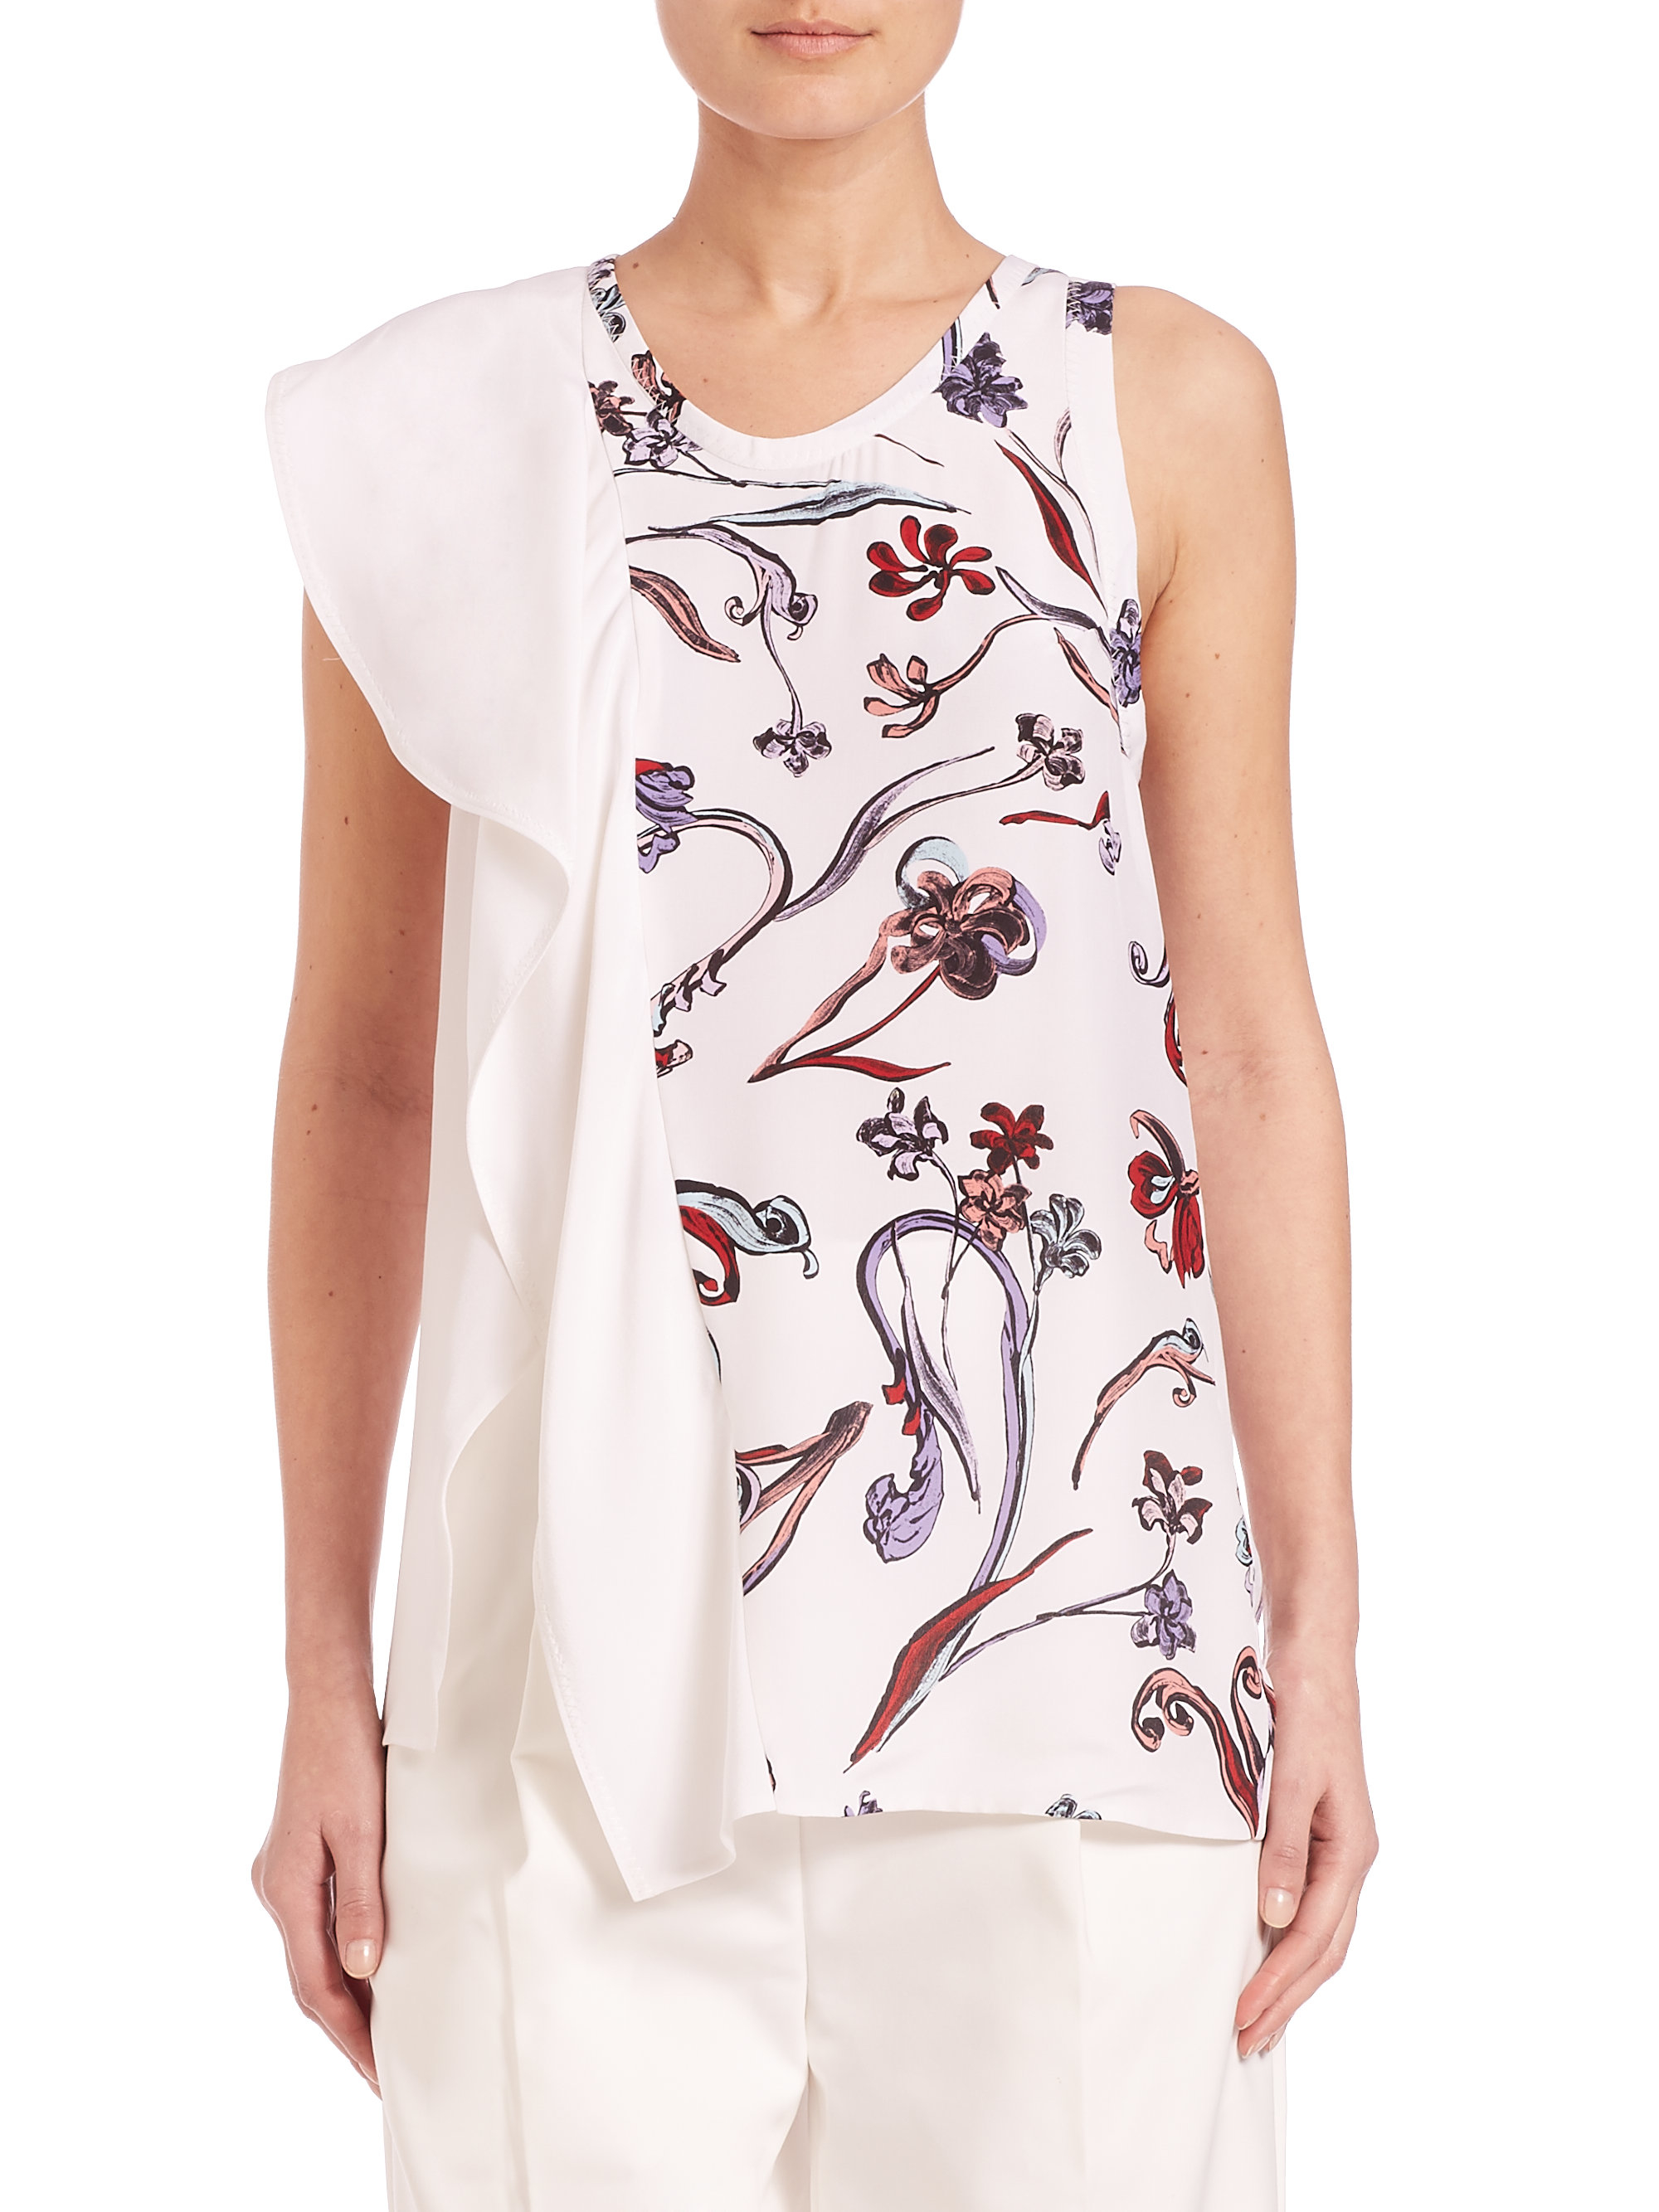 2eaa5898e4933 Lyst - 3.1 Phillip Lim Silk Ruffle-detail Printed Top in White